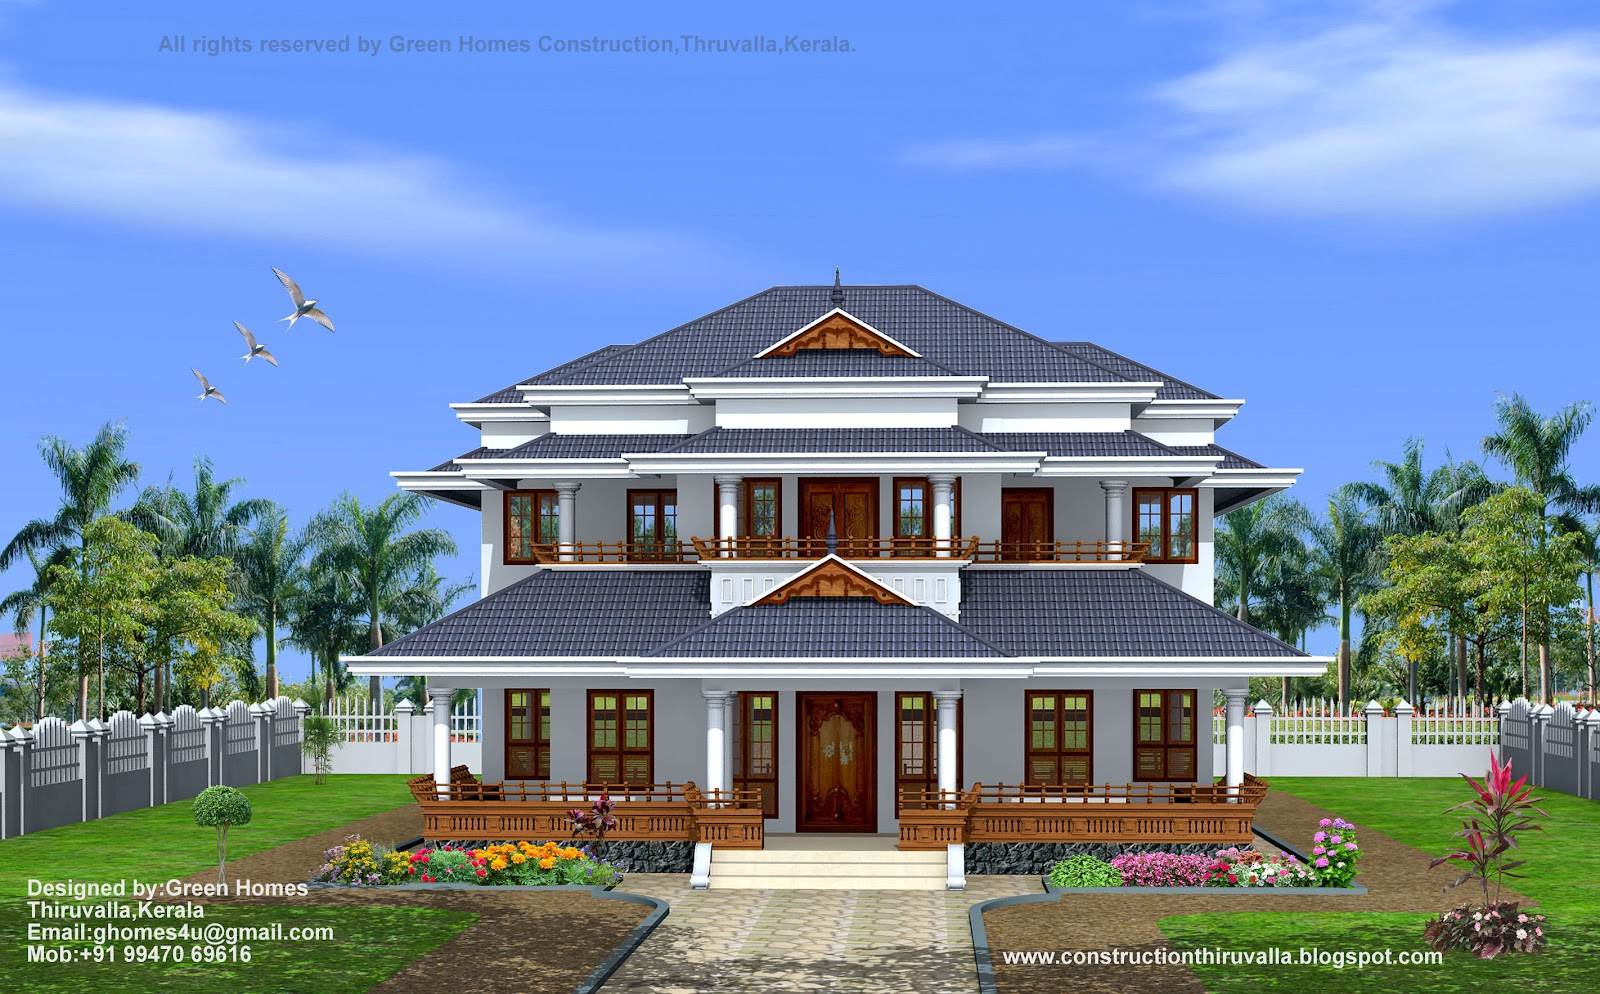 Green homes traditional style kerala home design 3450 sq feet for Home design 4u kerala